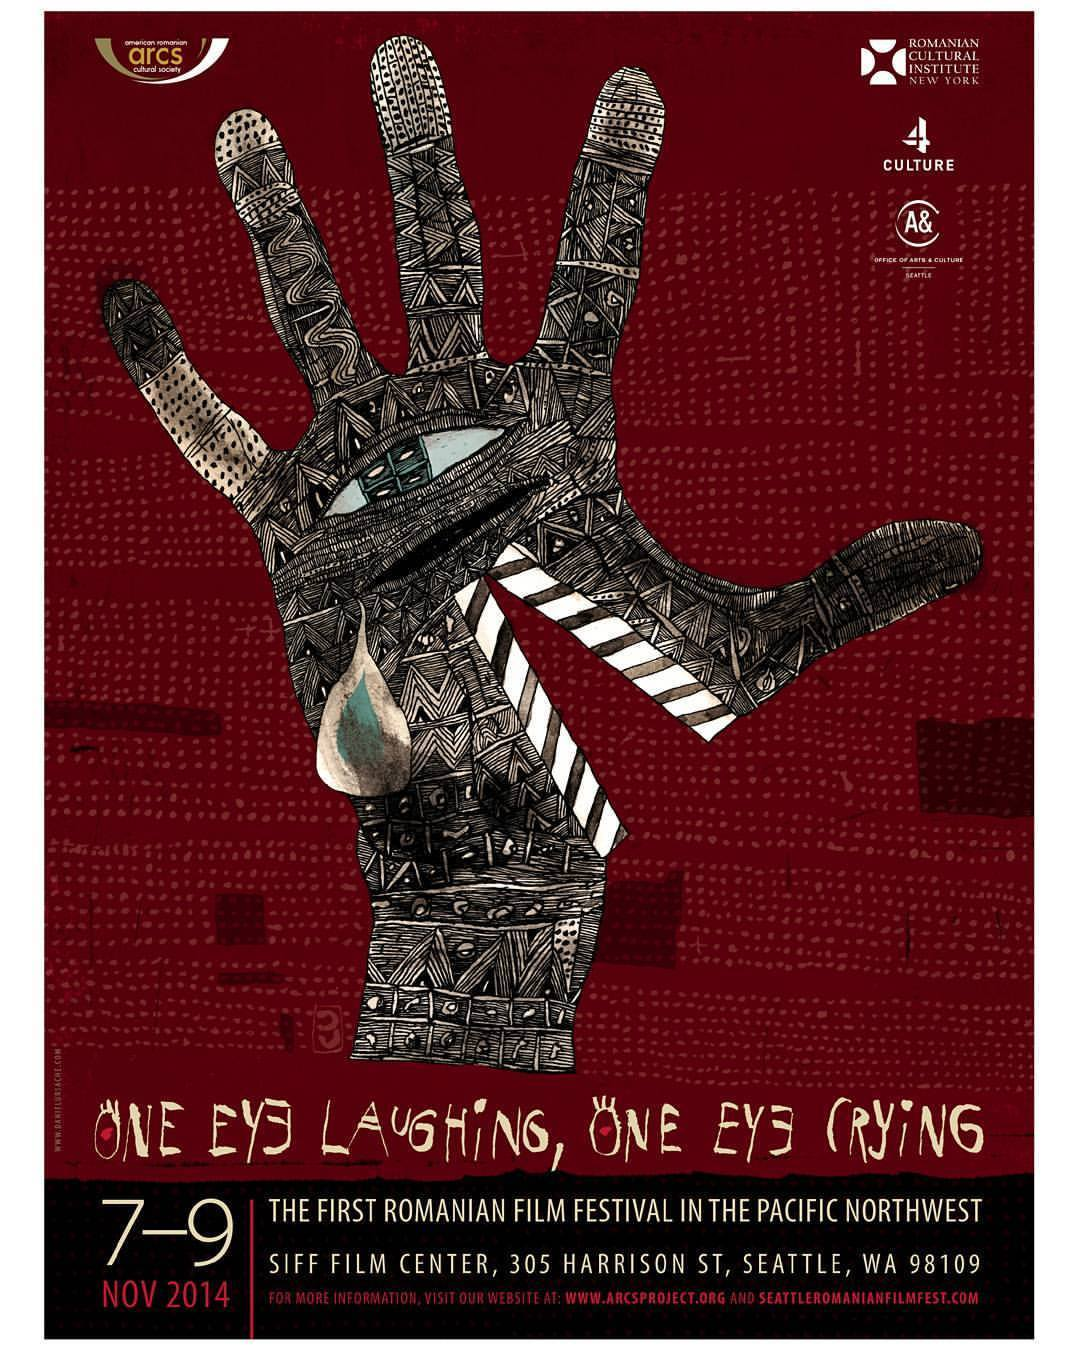 Poster image for Romanian Film Festival - 1st Edition